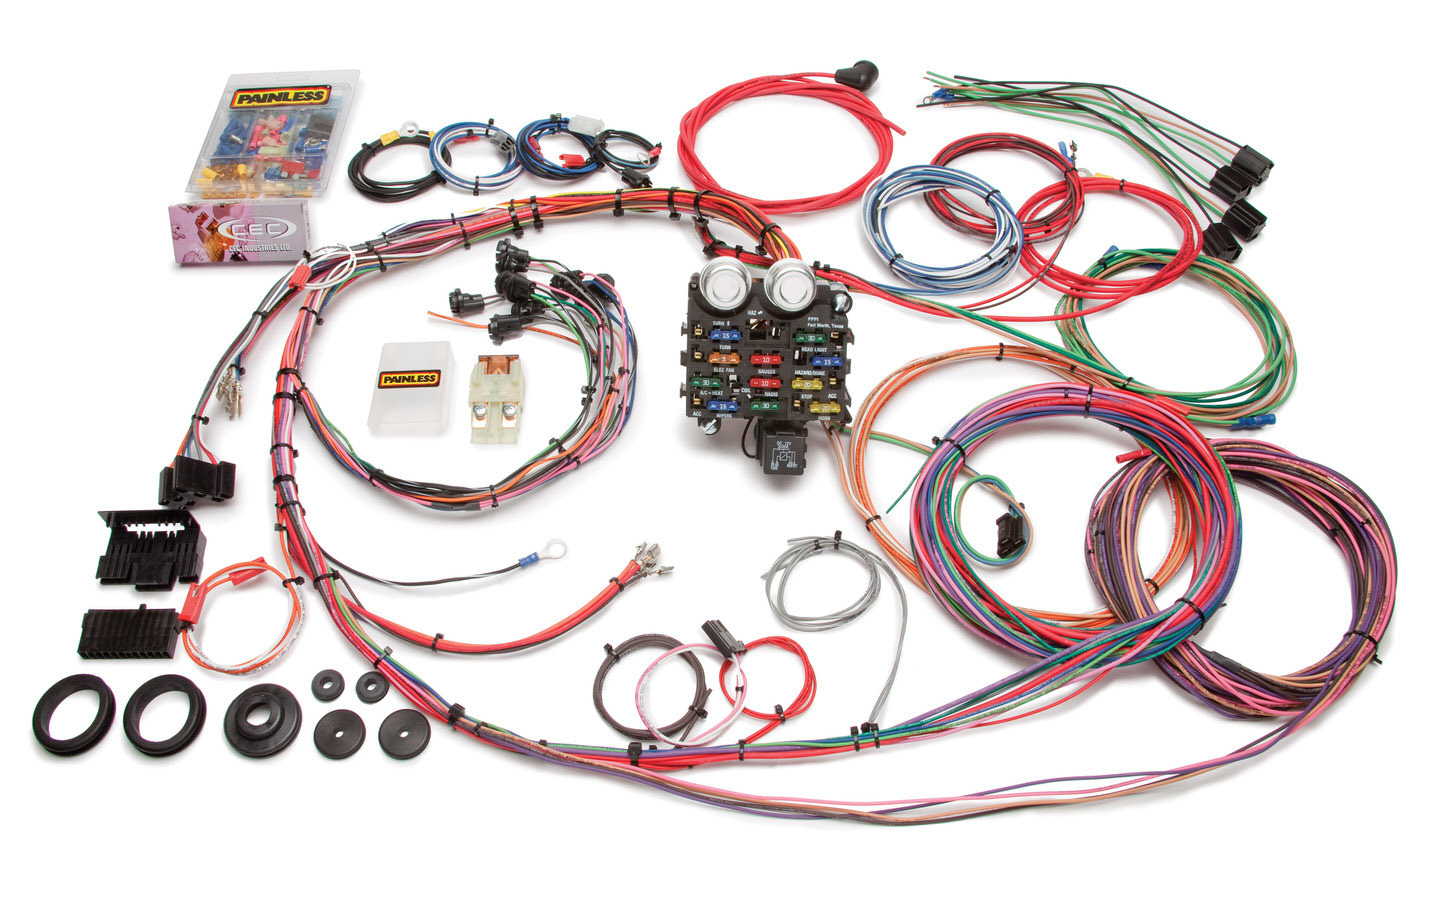 Painless Wiring 10112 Car Wiring Harness, Chassis, Complete, 19 Circuit, GM Fullsize Truck 1963-66, Kit